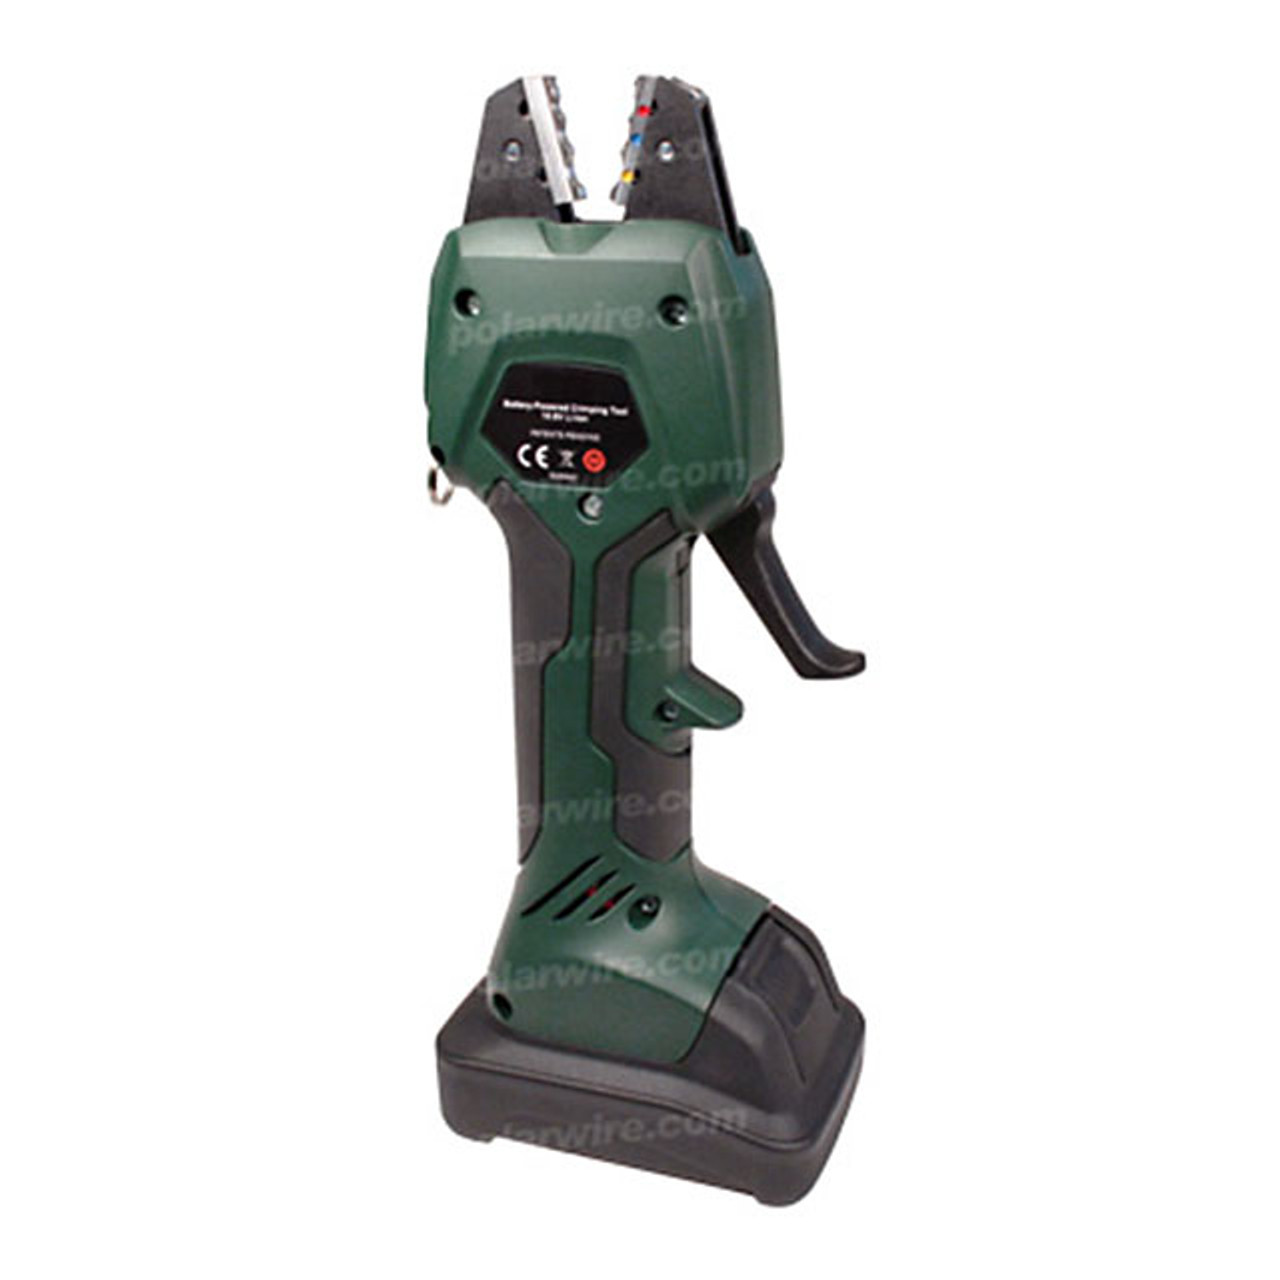 CRIMPER 22-10GA TERMINALS BATTERY OPERATED